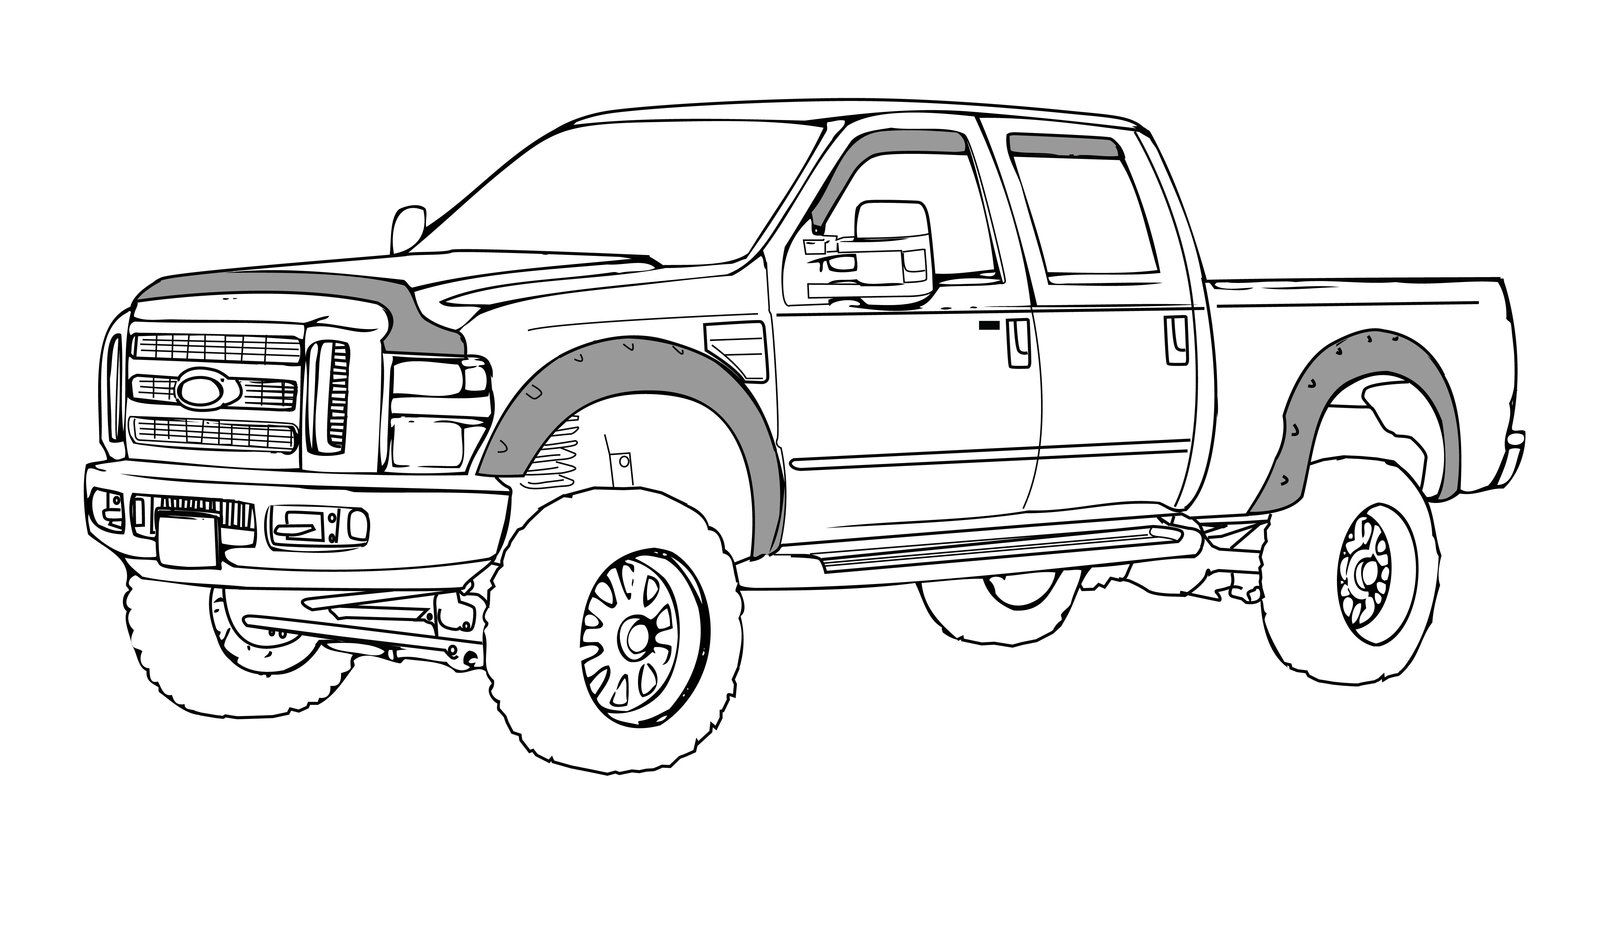 cool truck coloring pages cool garbage truck coloring page for kids transportation cool pages coloring truck